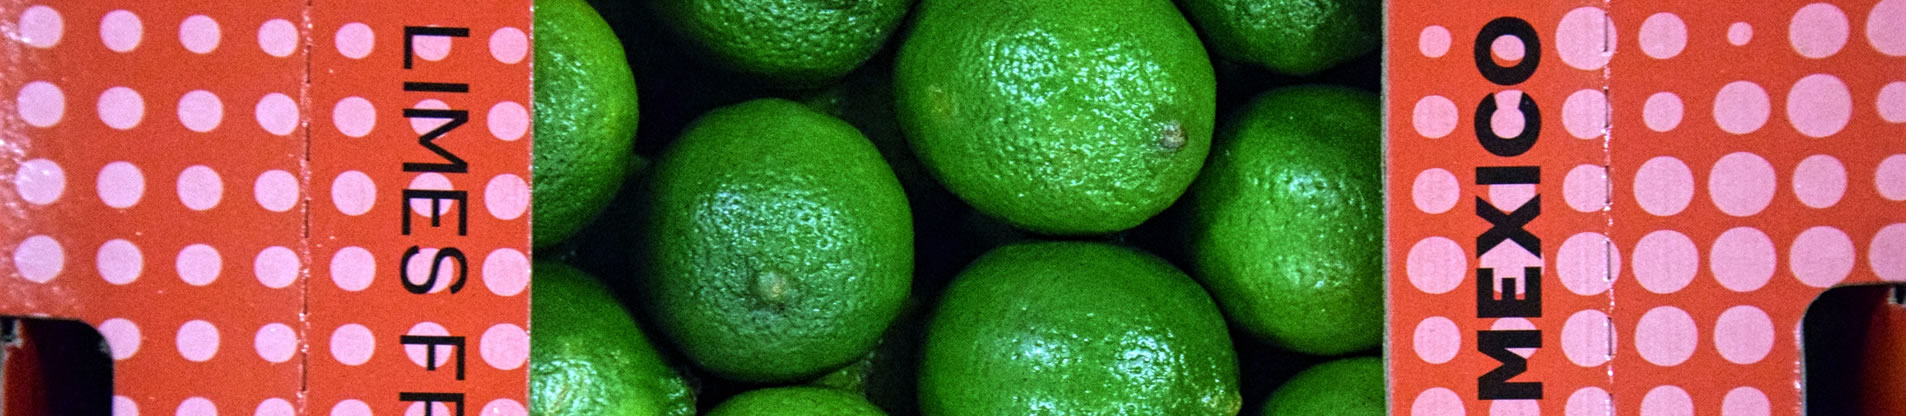 importateur-de-citrons-lime-en-france-1